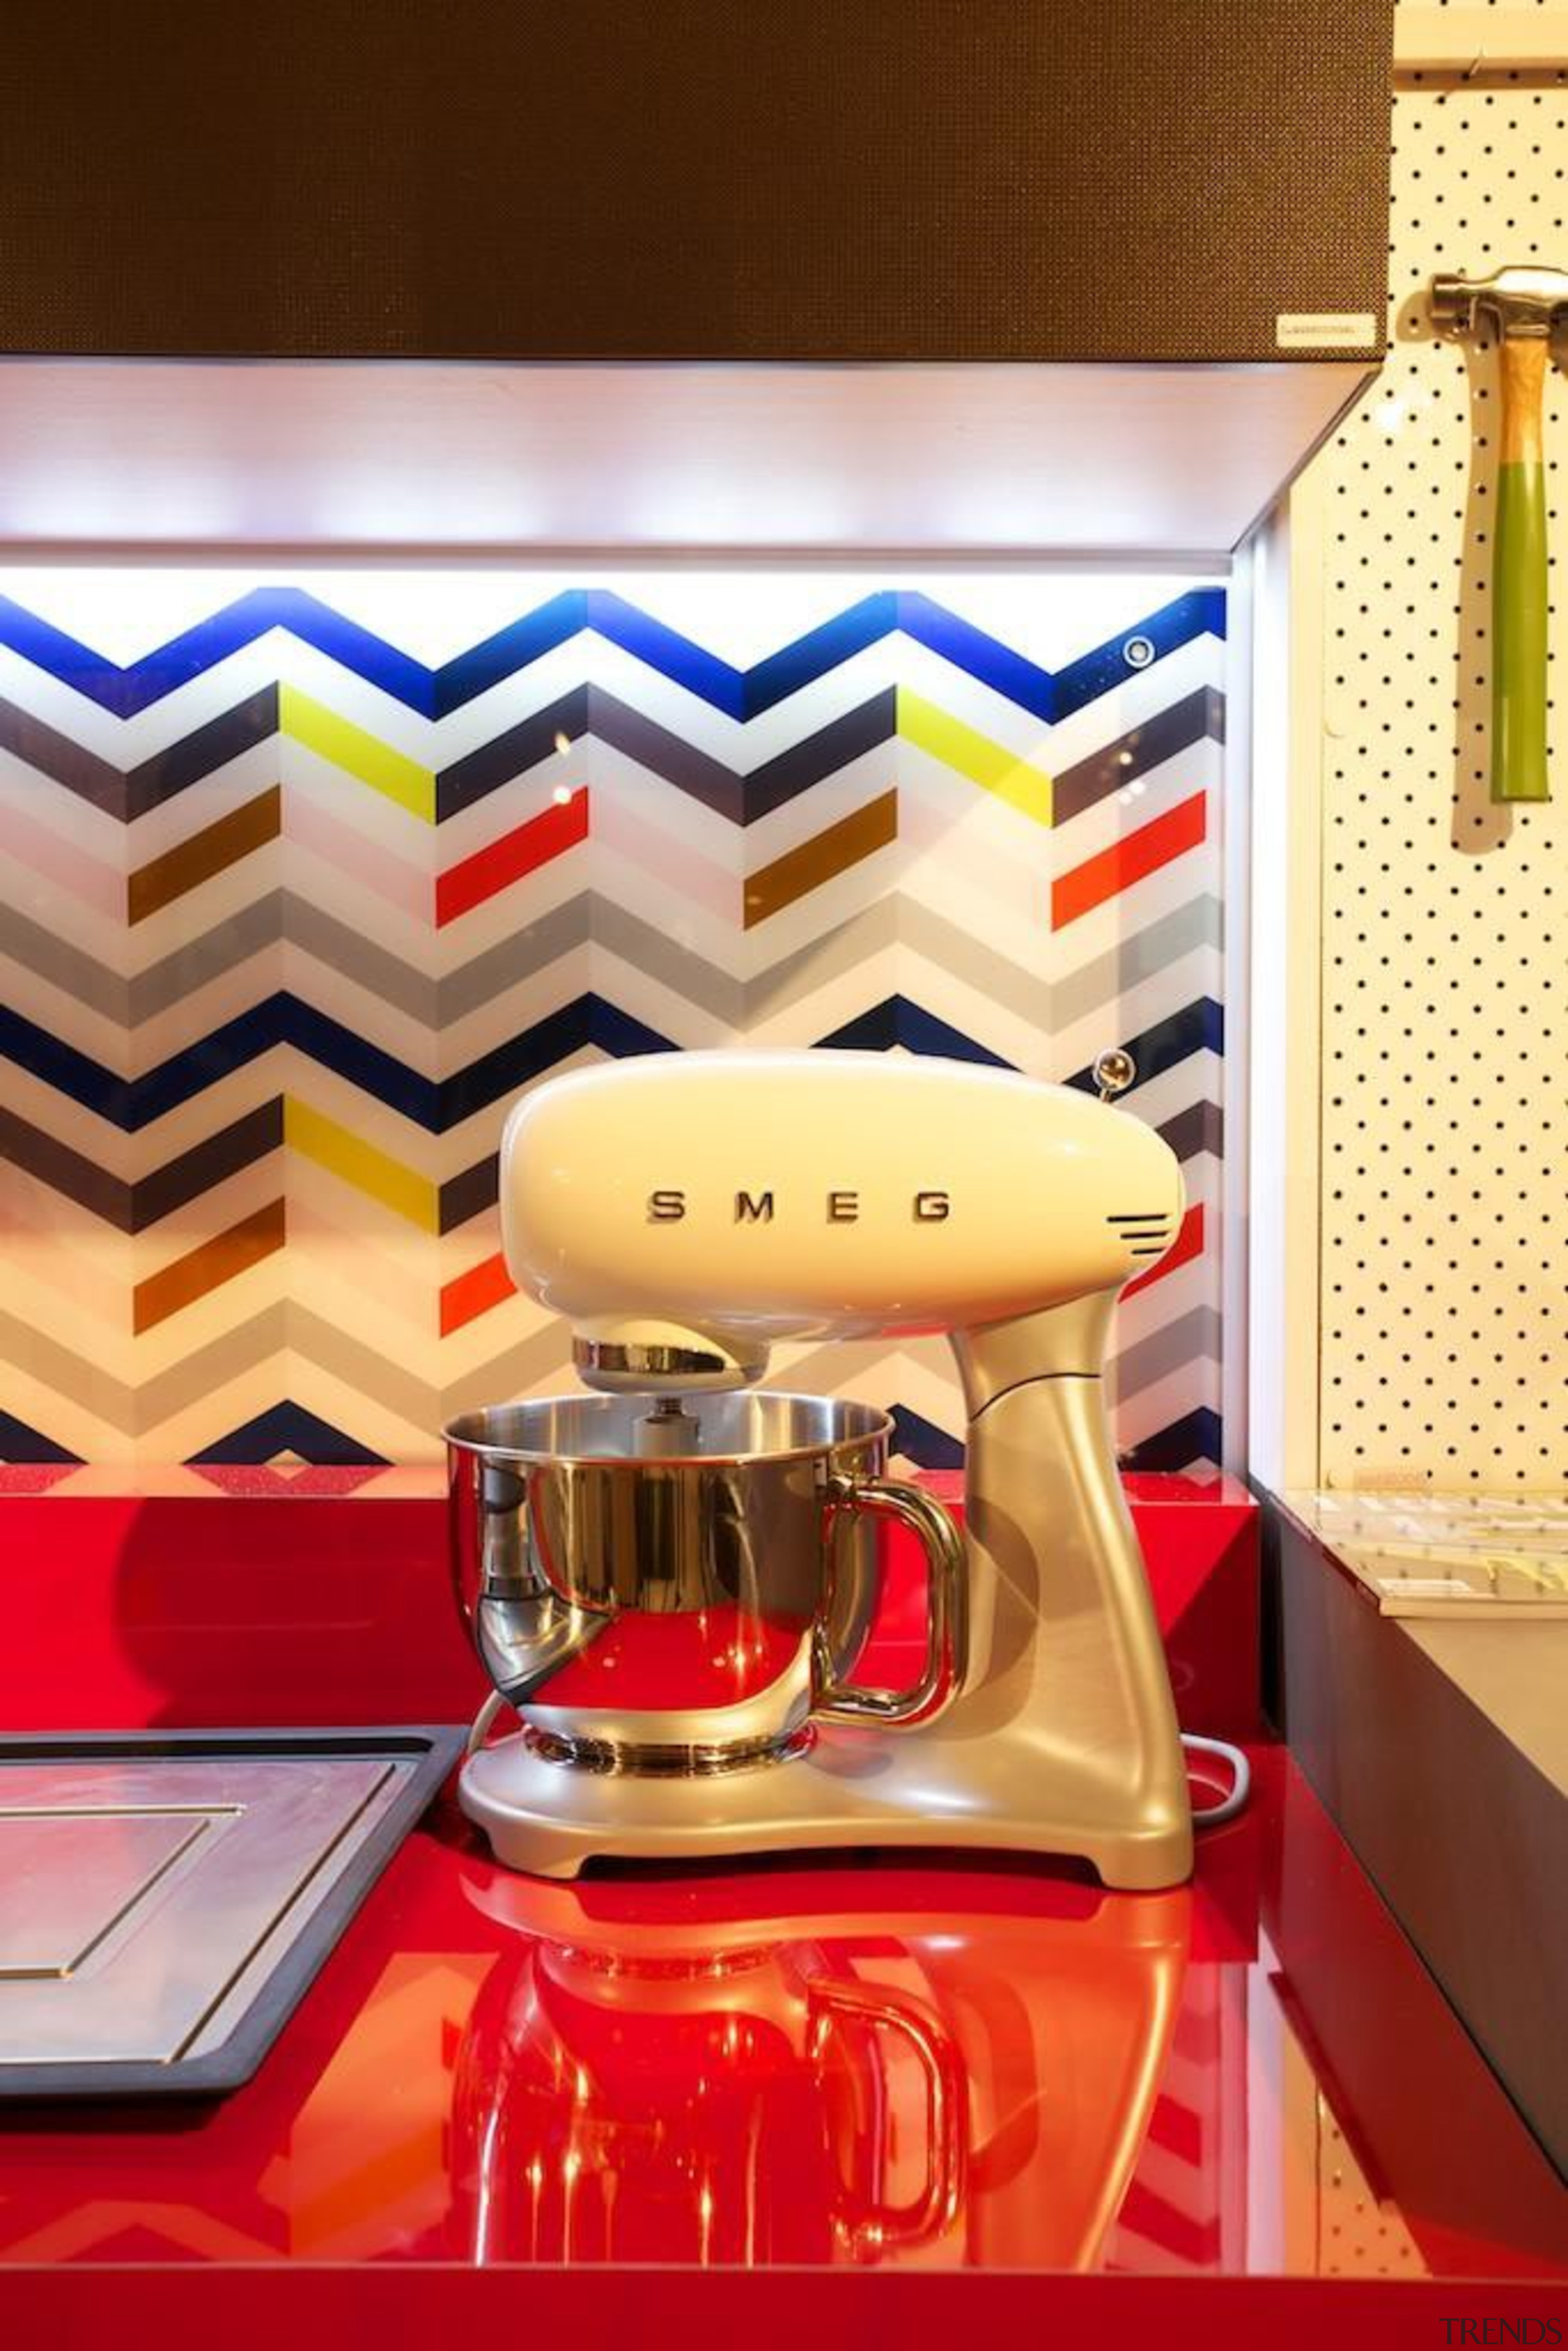 The soon to be released Smeg Small Appliances interior design, product design, table, orange, red